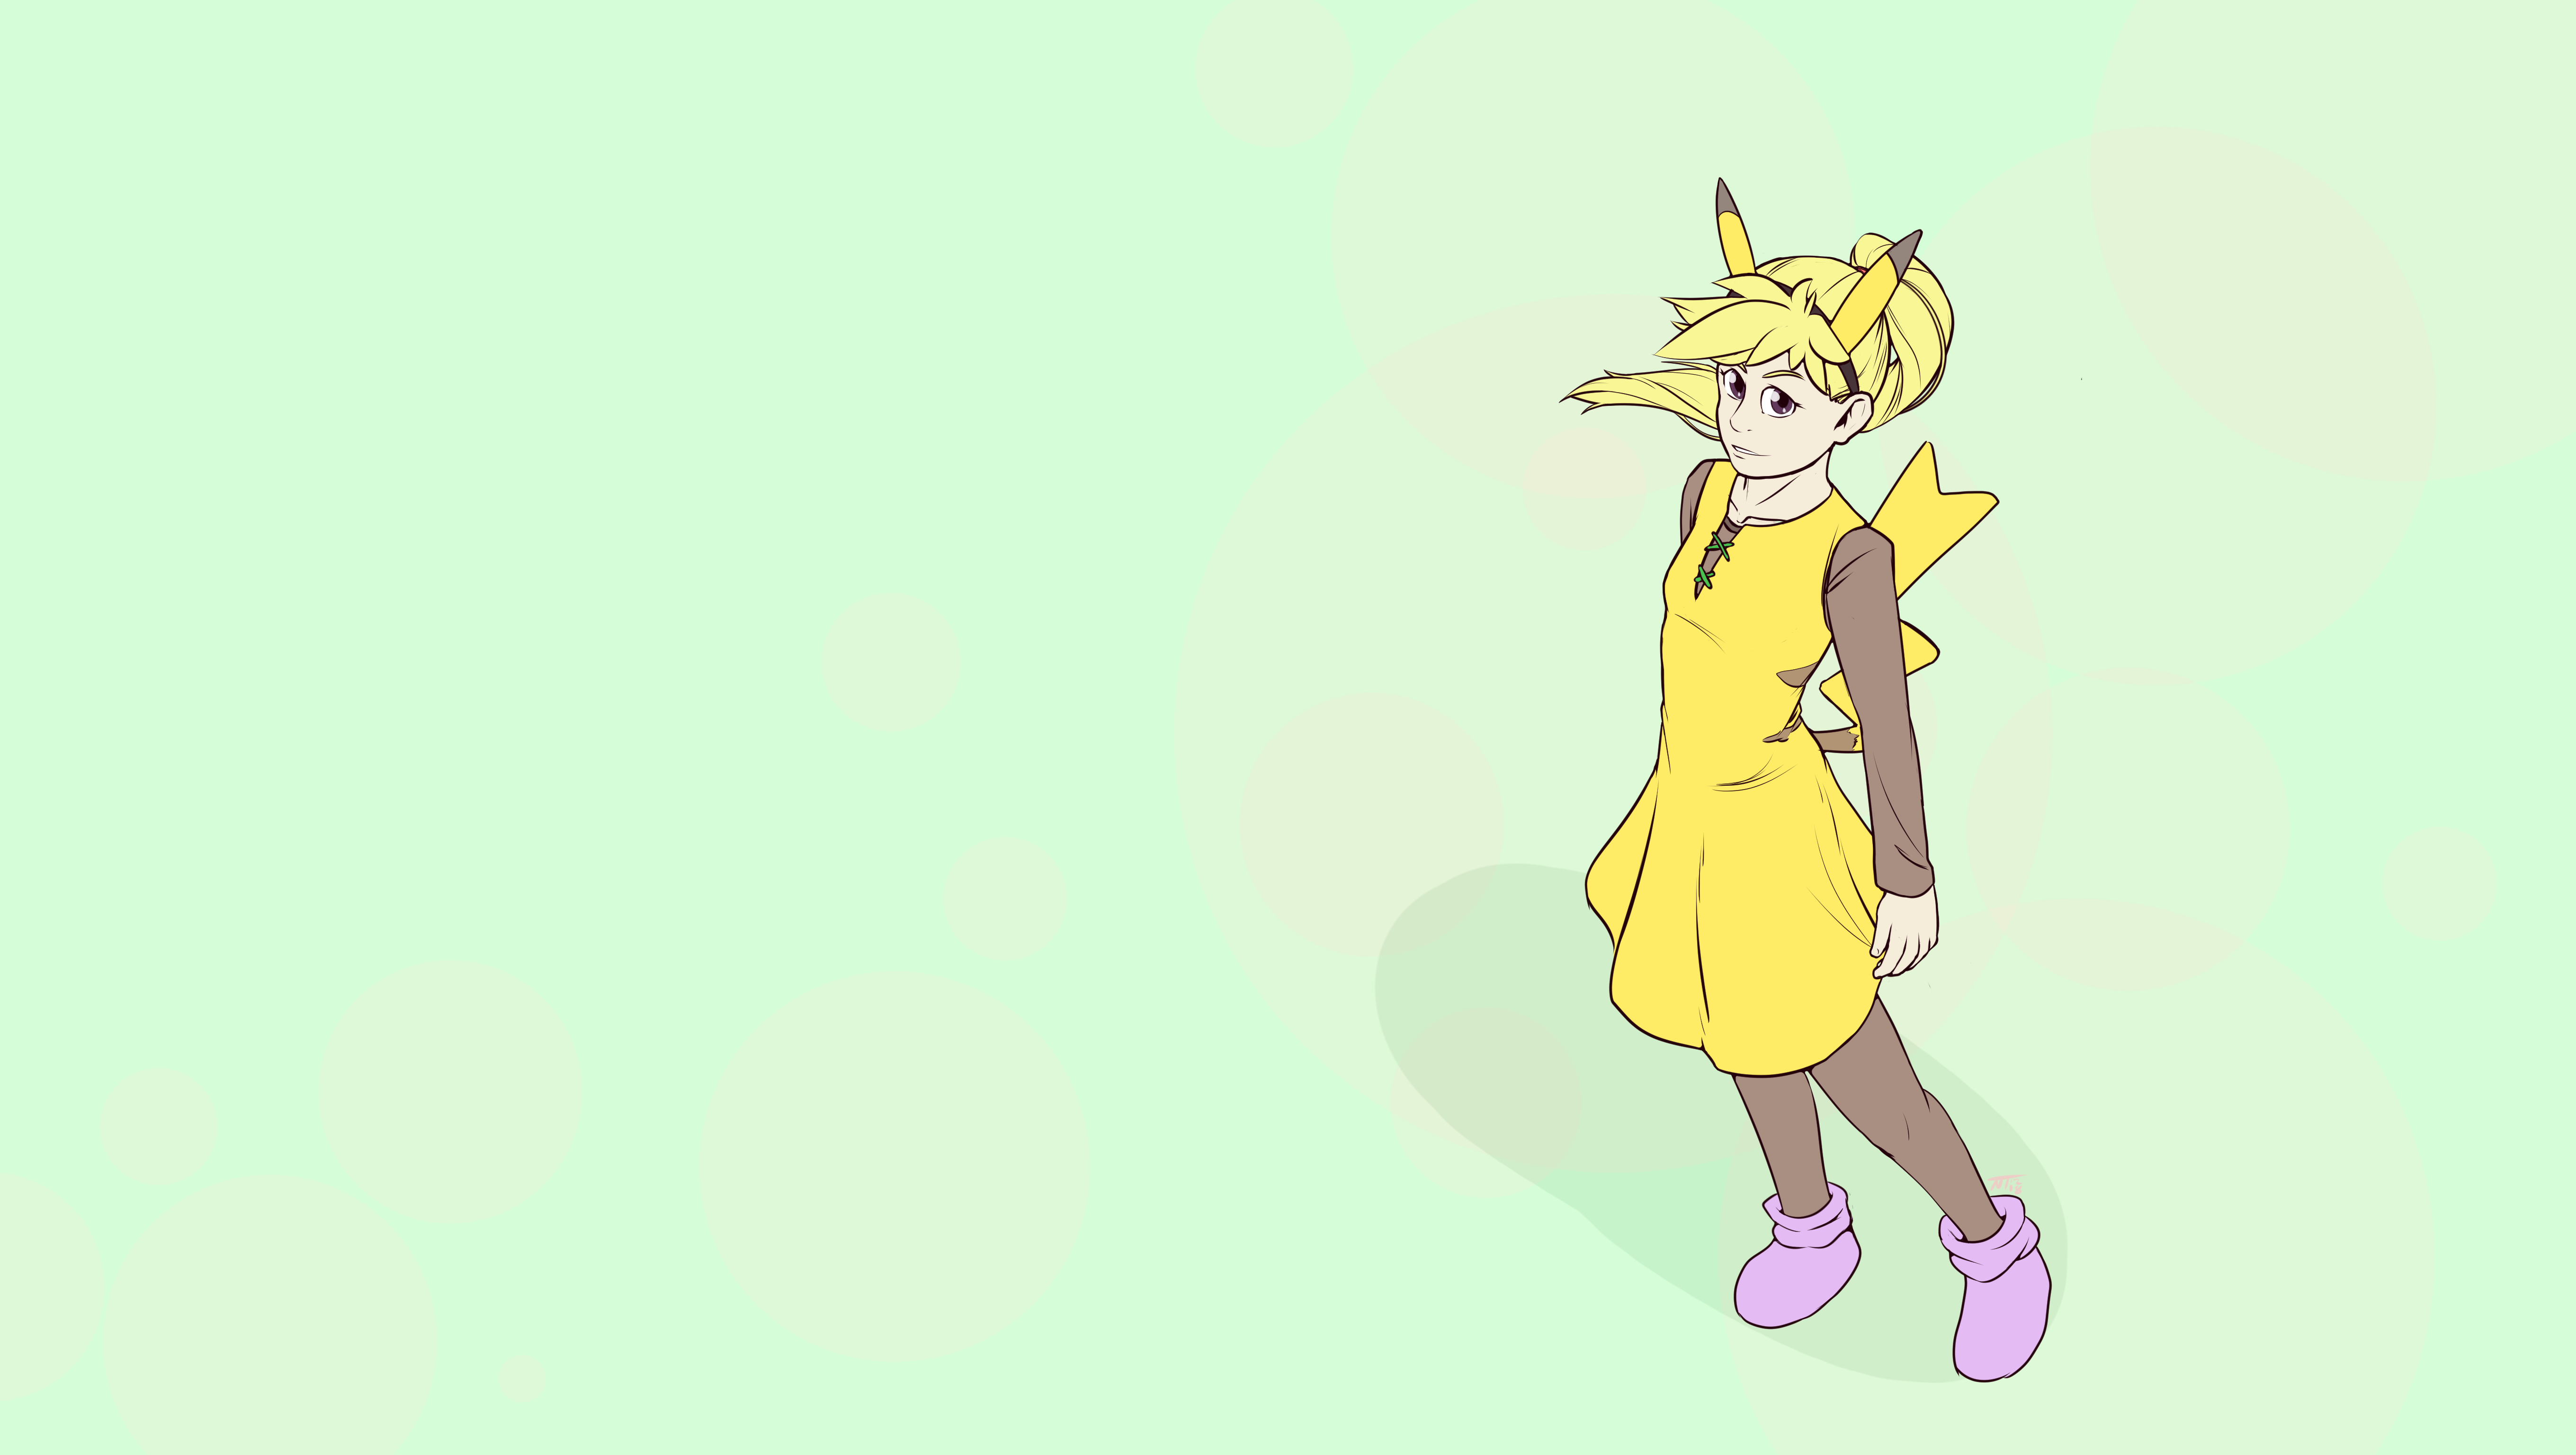 Commission - Yellow